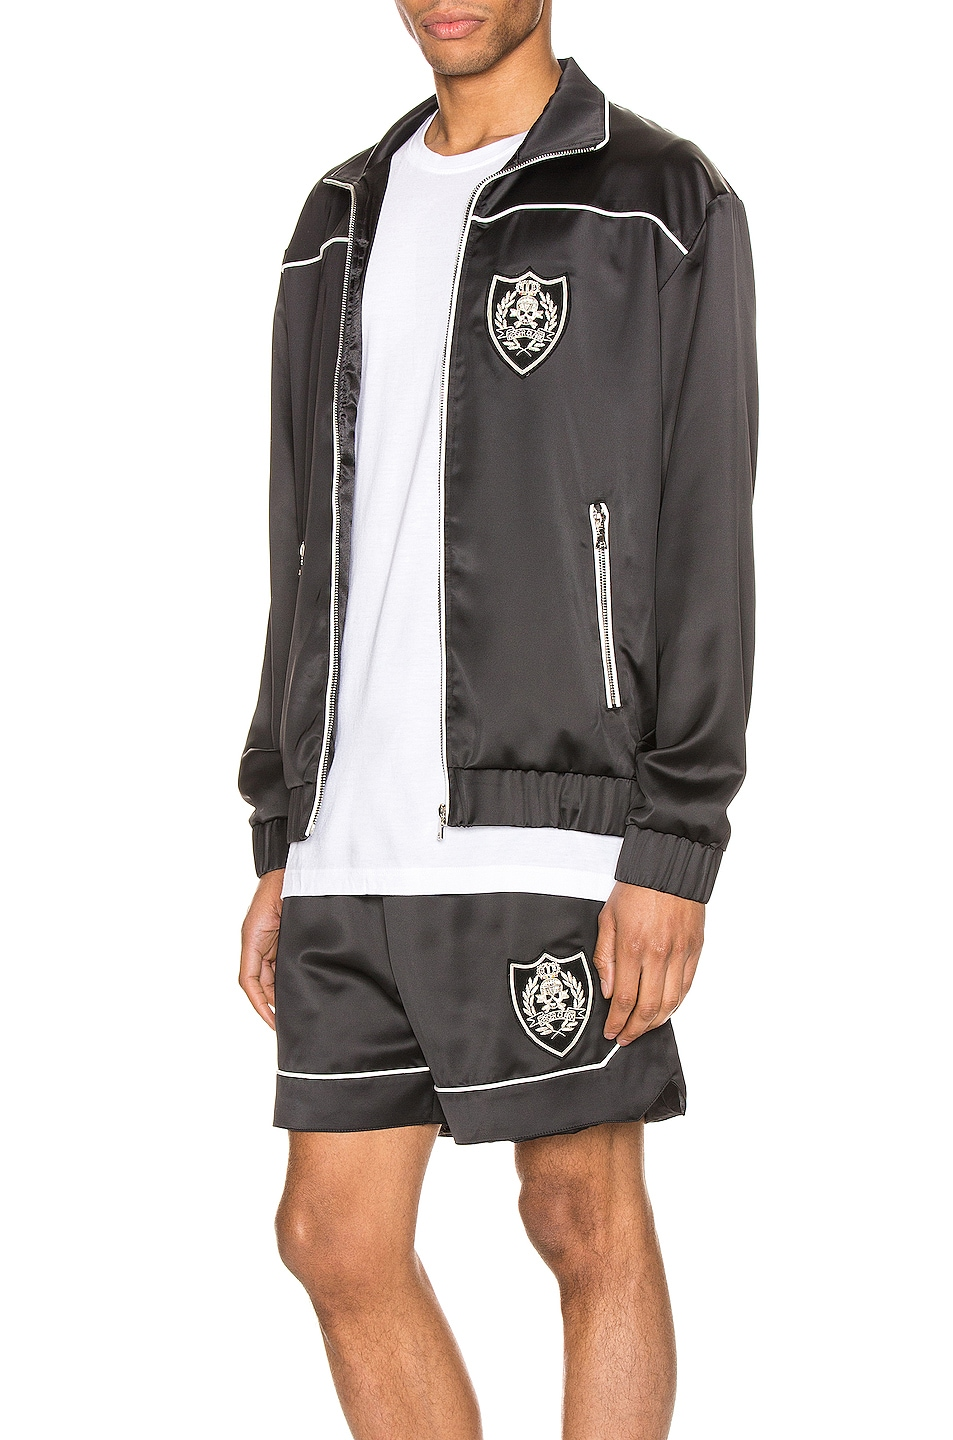 Image 4 of Keiser Clark The Academy Tracksuit Jacket in Black & White